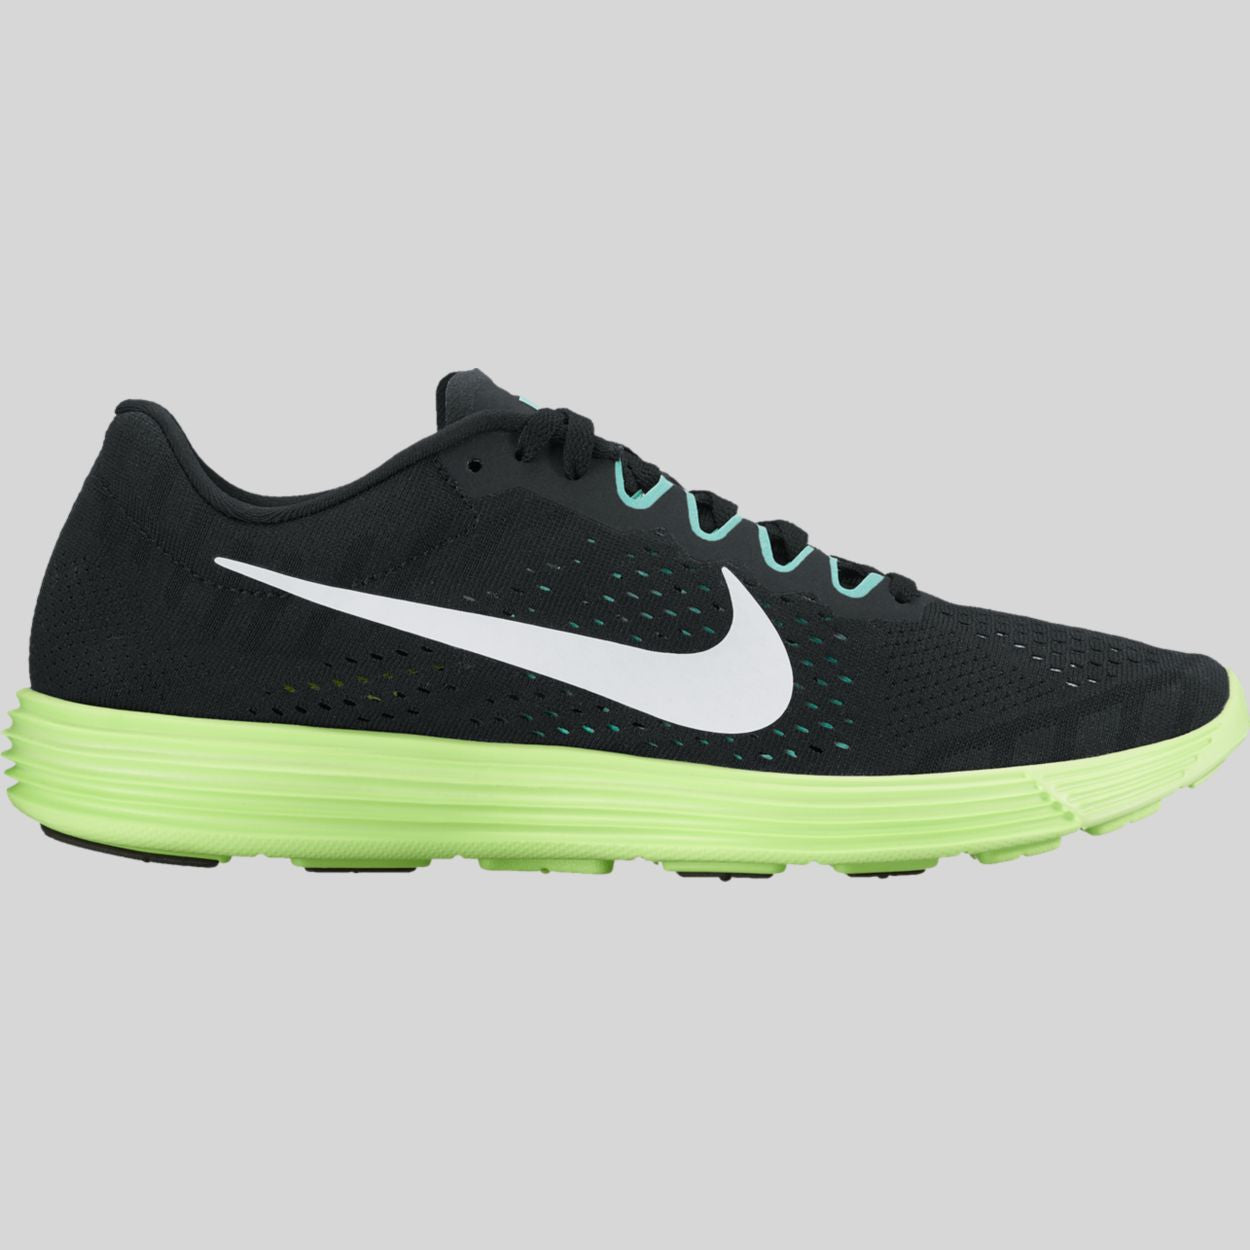 6bcdad60b9b415 ... Nike Lunaracer 4 Black White Ghost Green (844562-001) ...